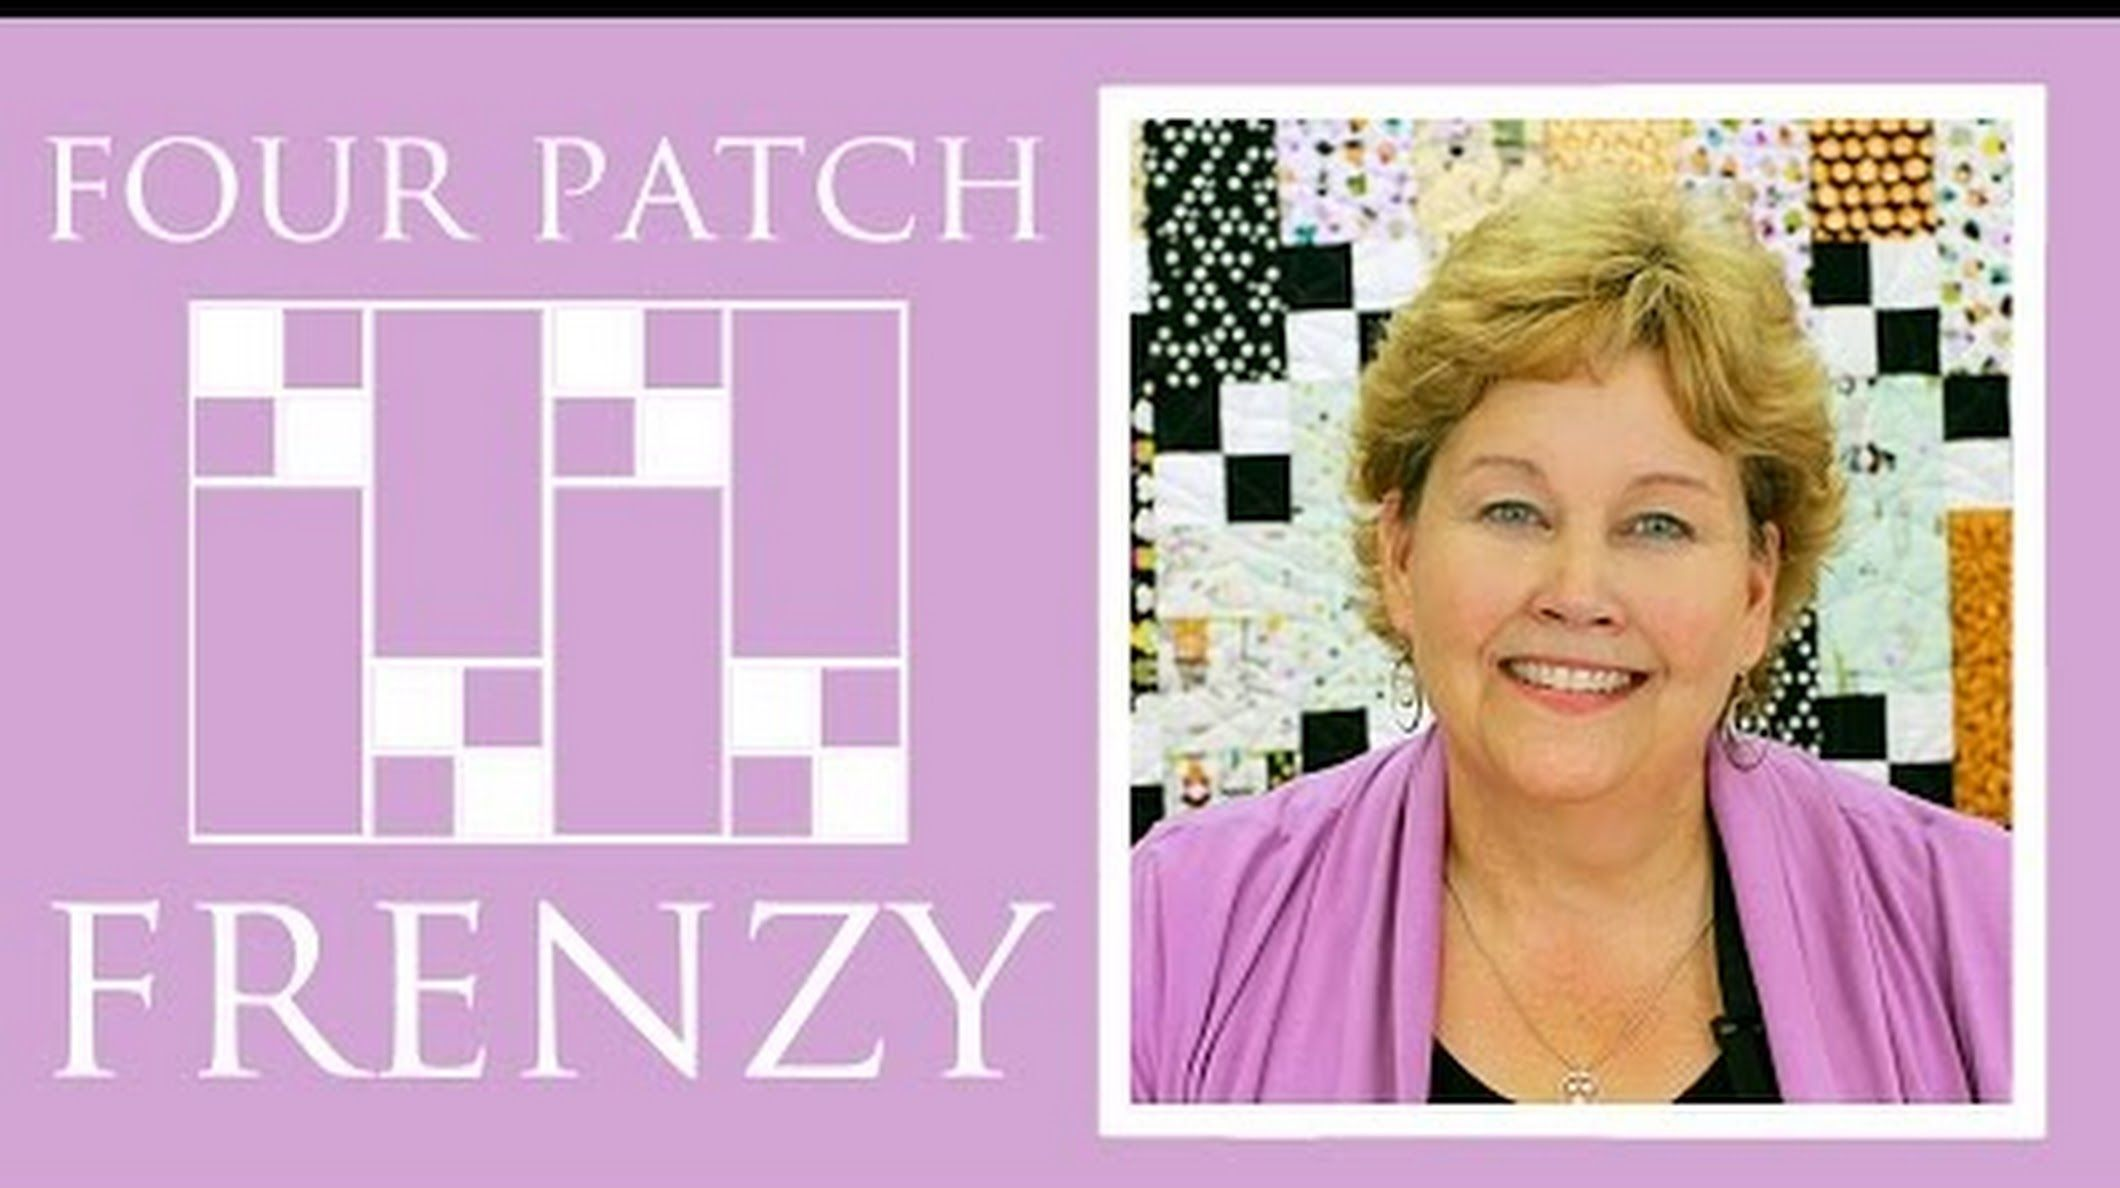 Missouri star quilt company google patchwork pinterest the four patch frenzy quilt easy quilting tutorial with jenny doan of missouri star quilt co baditri Images